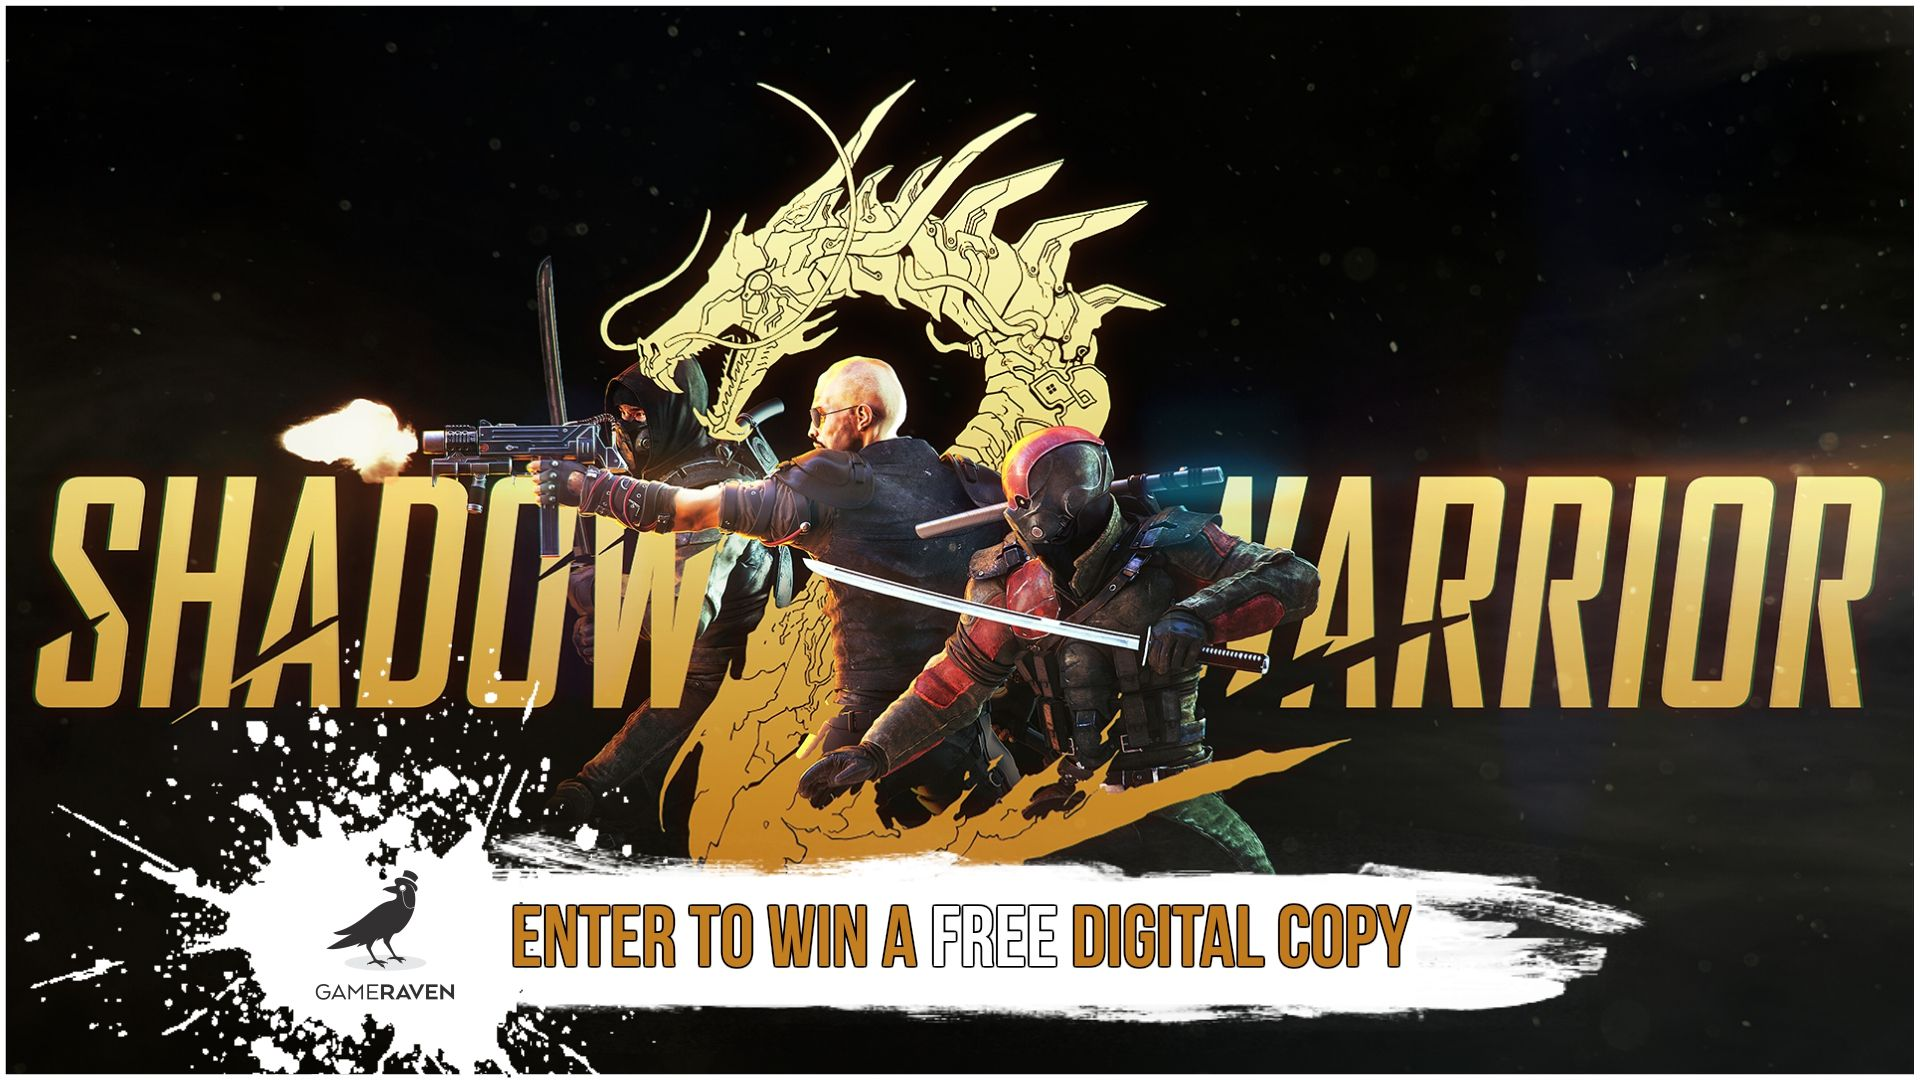 Help me win a free game from thegameraven